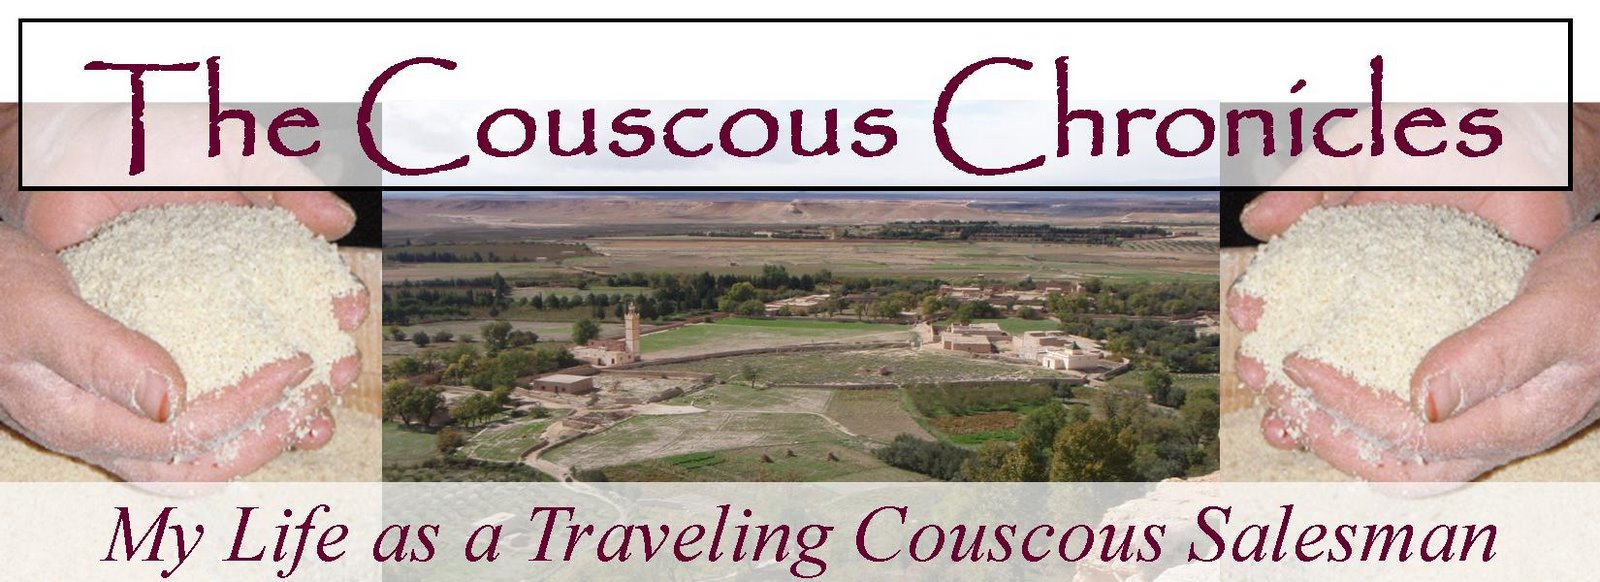 The Couscous Chronicles